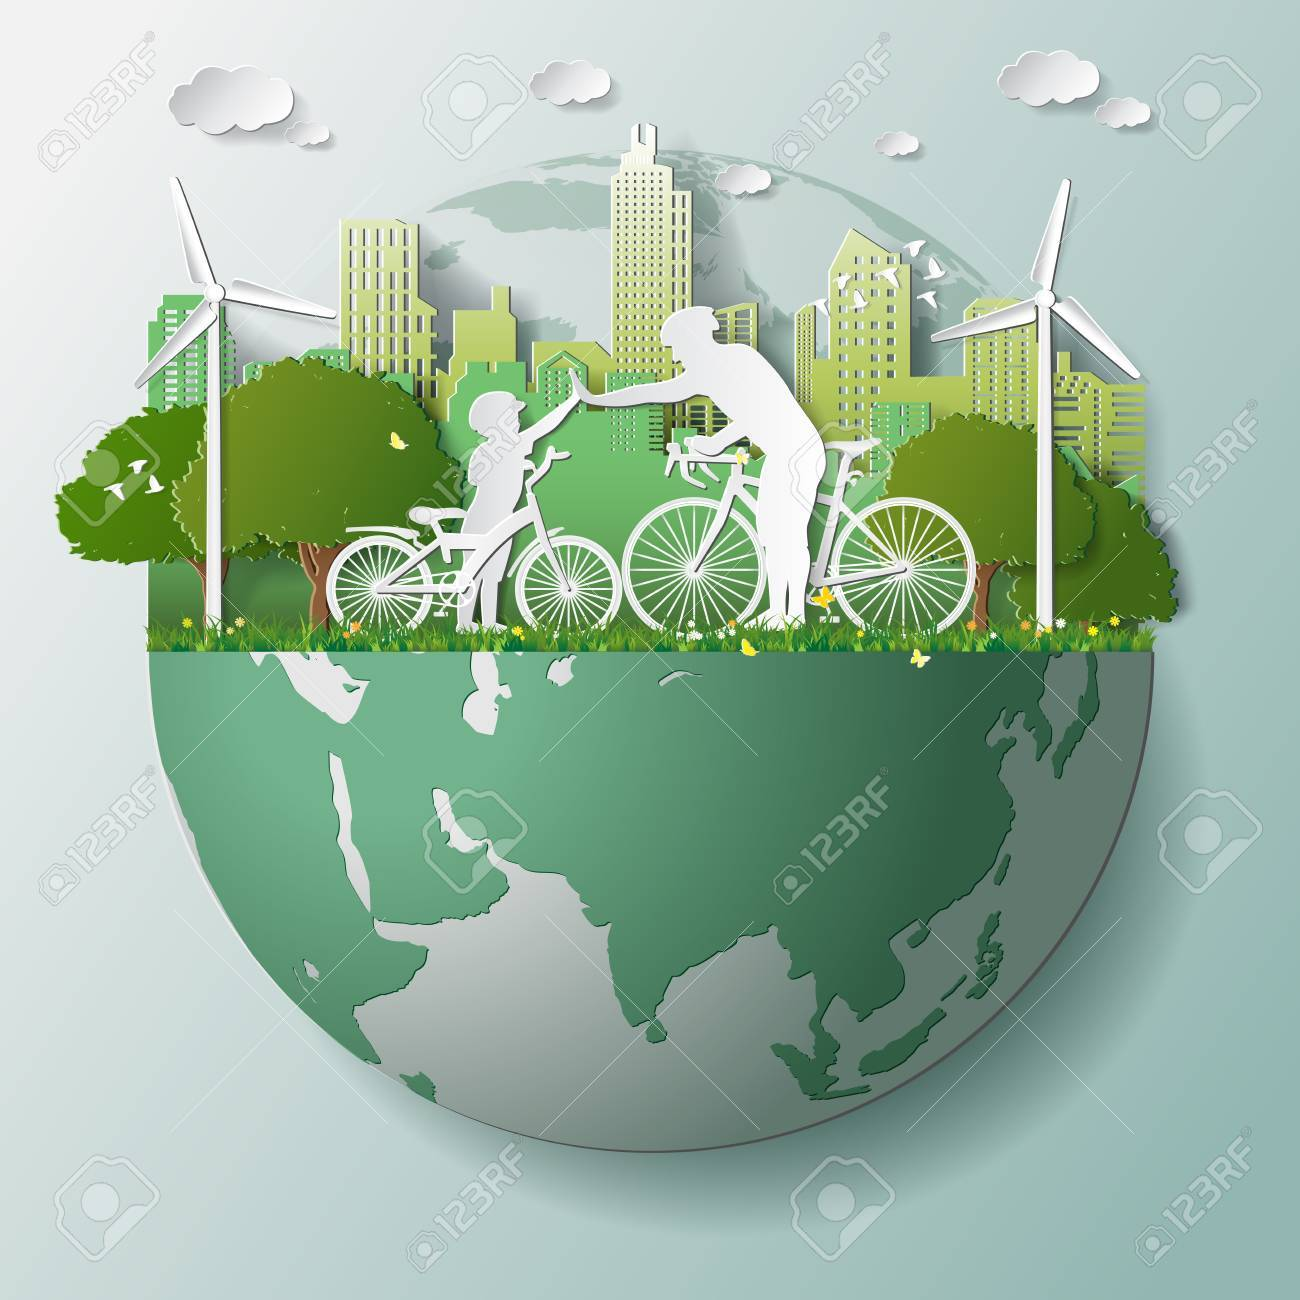 Paper folding art origami style vector illustration. Green renewable energy ecology technology power saving environmentally friendly concepts, father son join hands cycling in parks near city on globe - 83237394